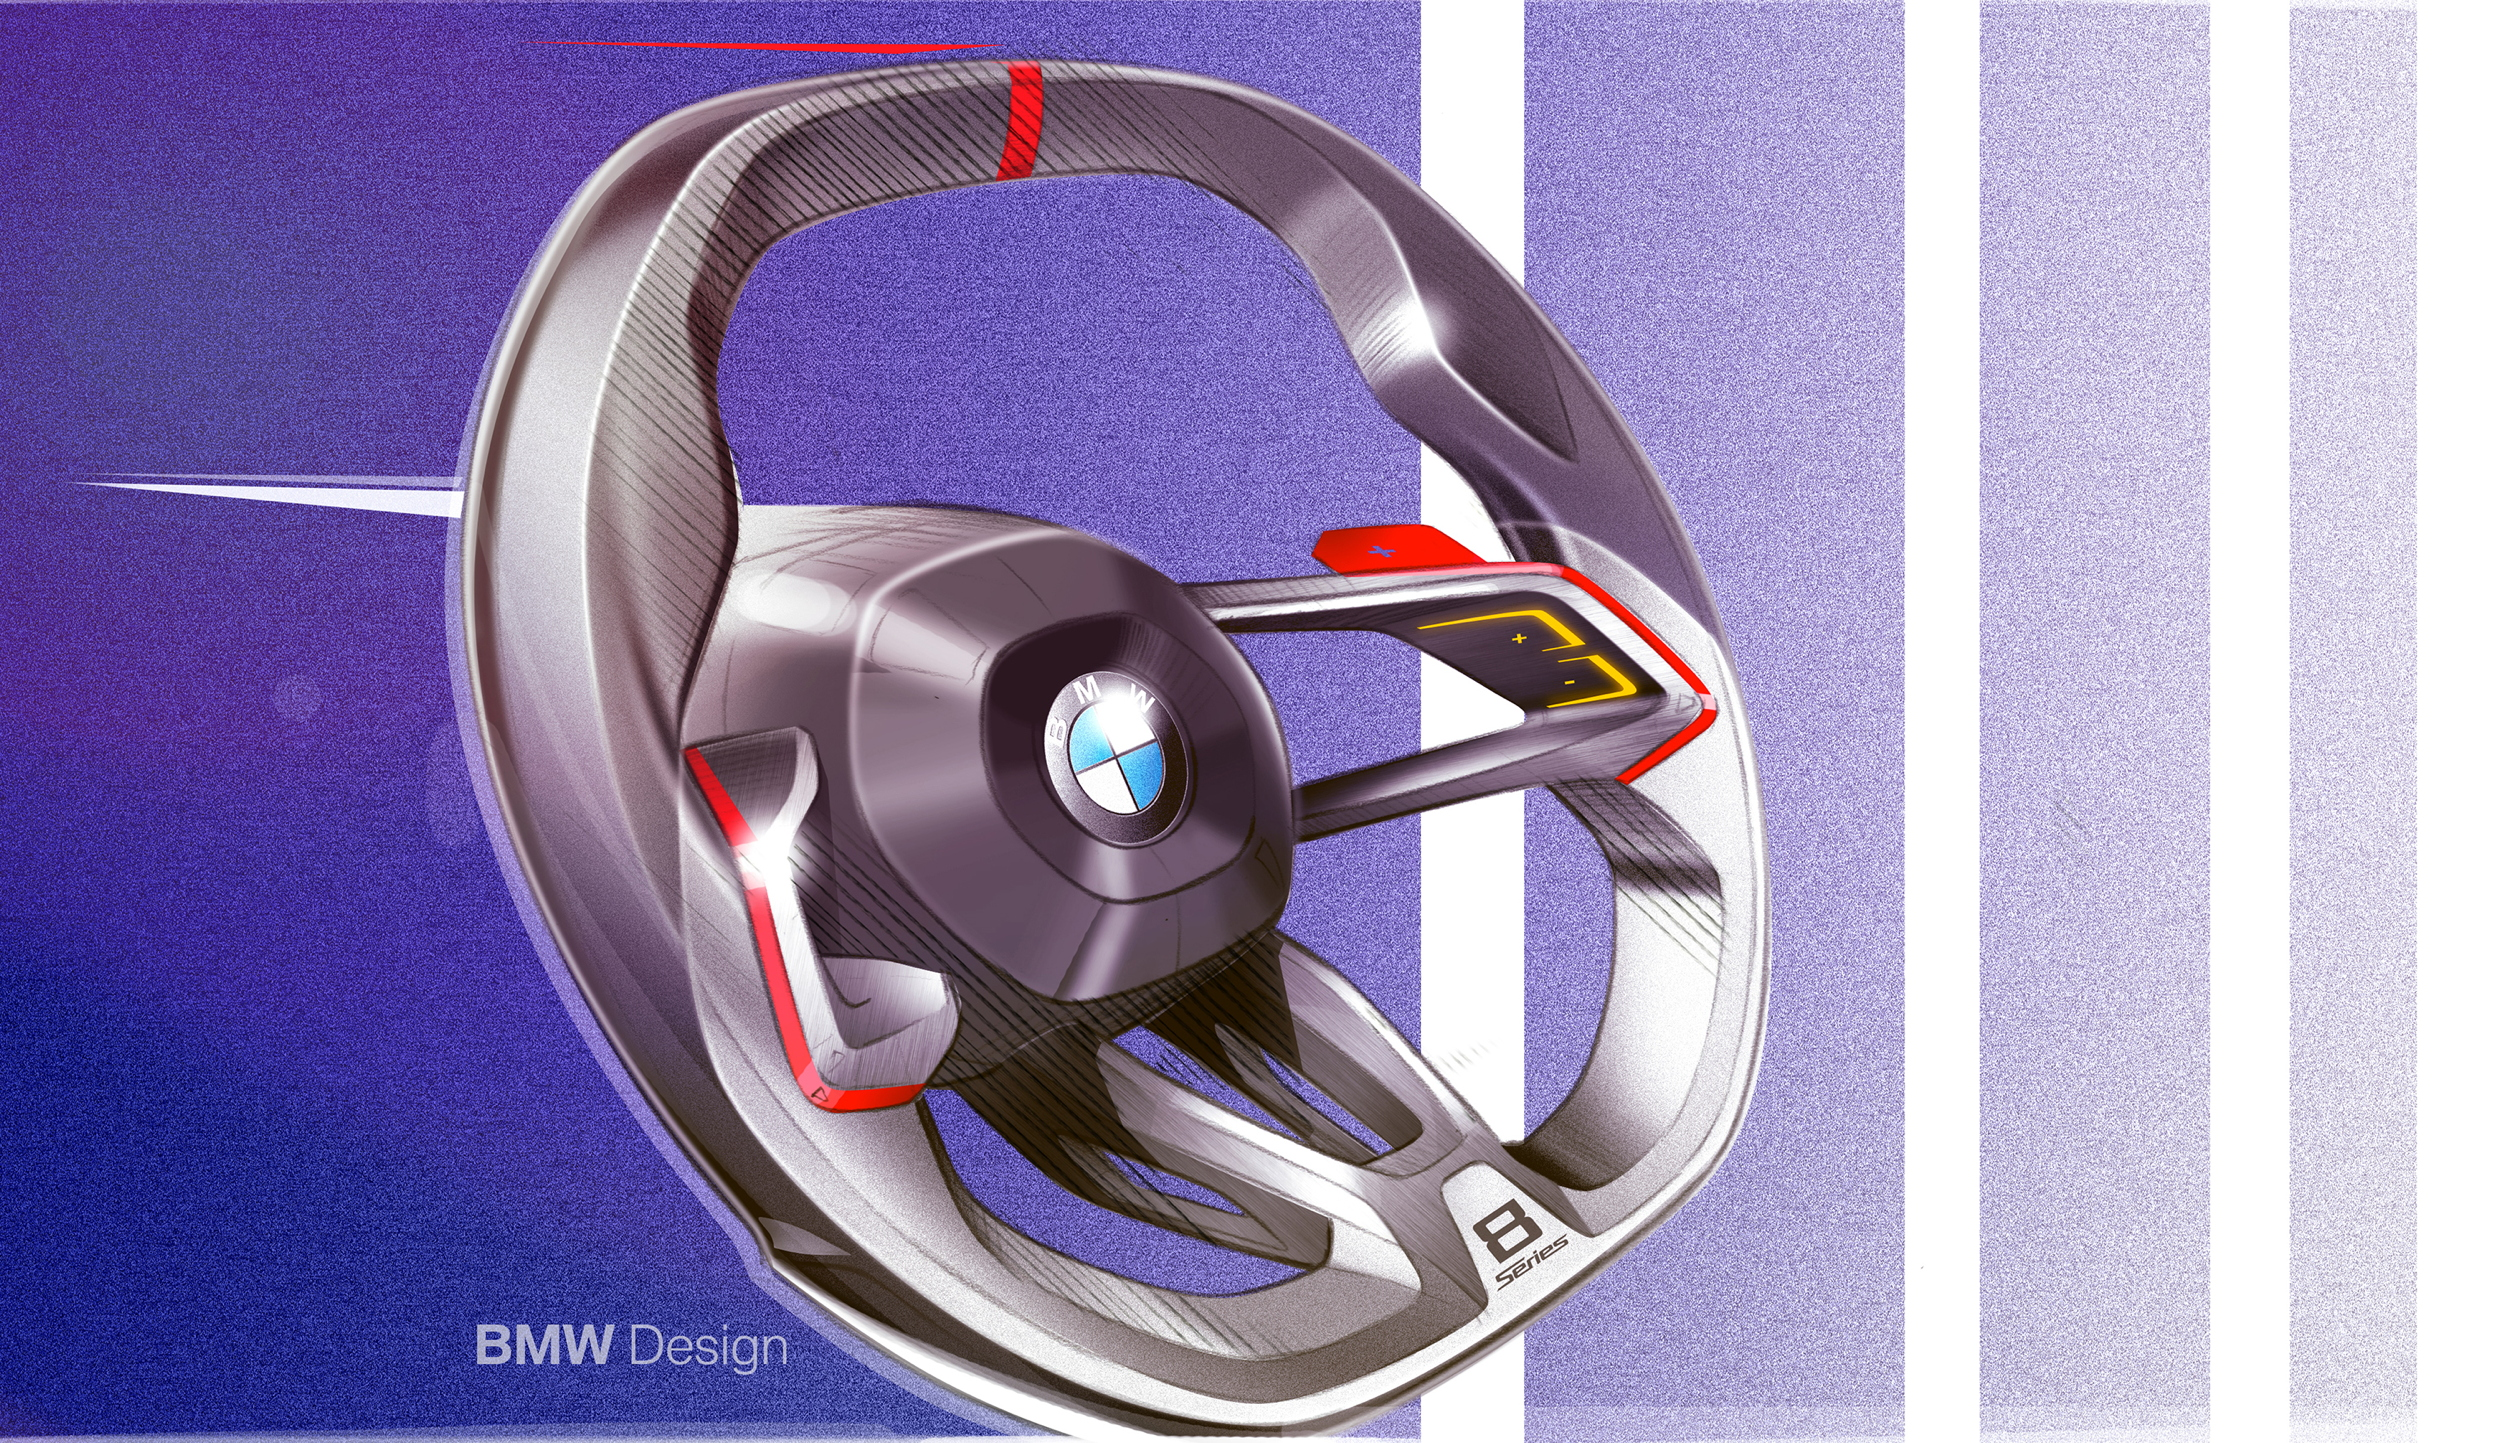 BMW Concept 8 Series steering wheel design sketch